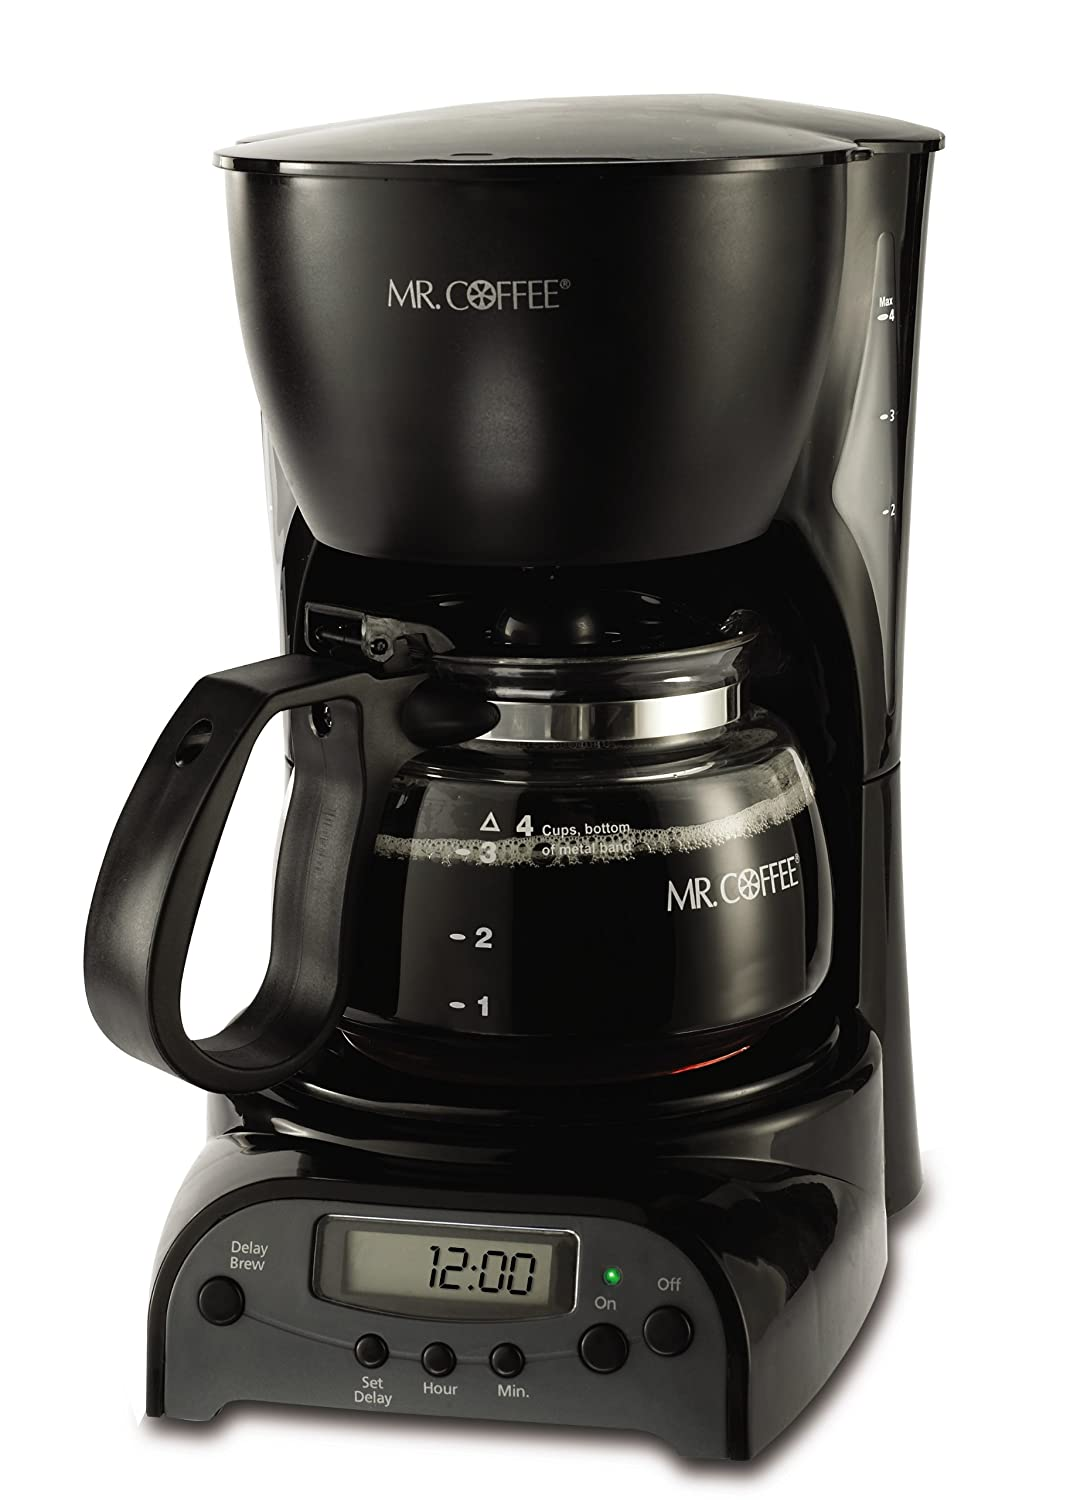 Mr coffee drx5 4 cup programmable coffeemaker coffee maker Coffee maker brands